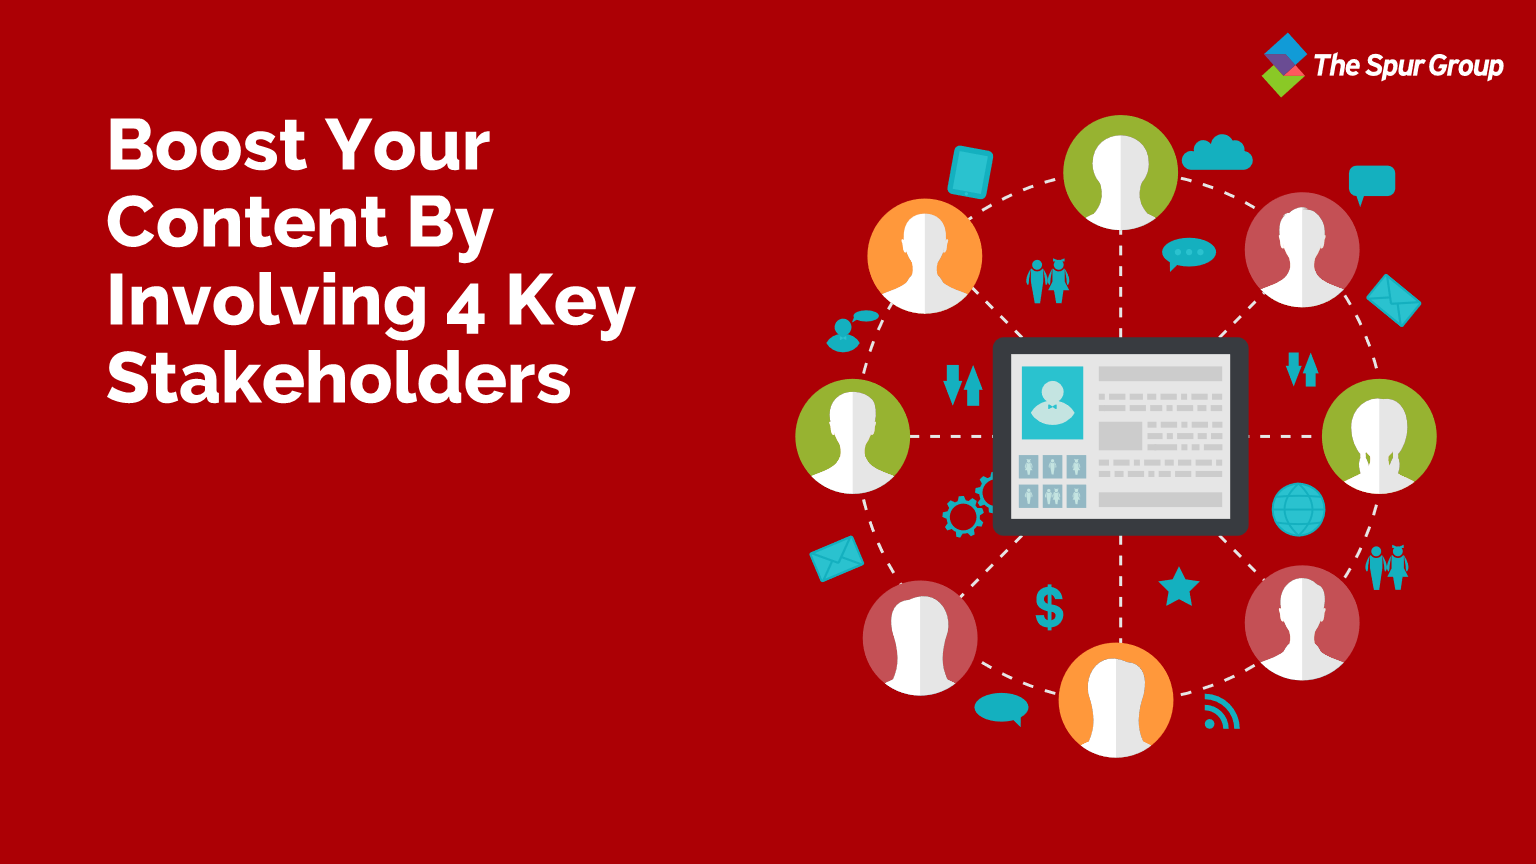 Boost your content by involving 4 key stakeholders Featured Image